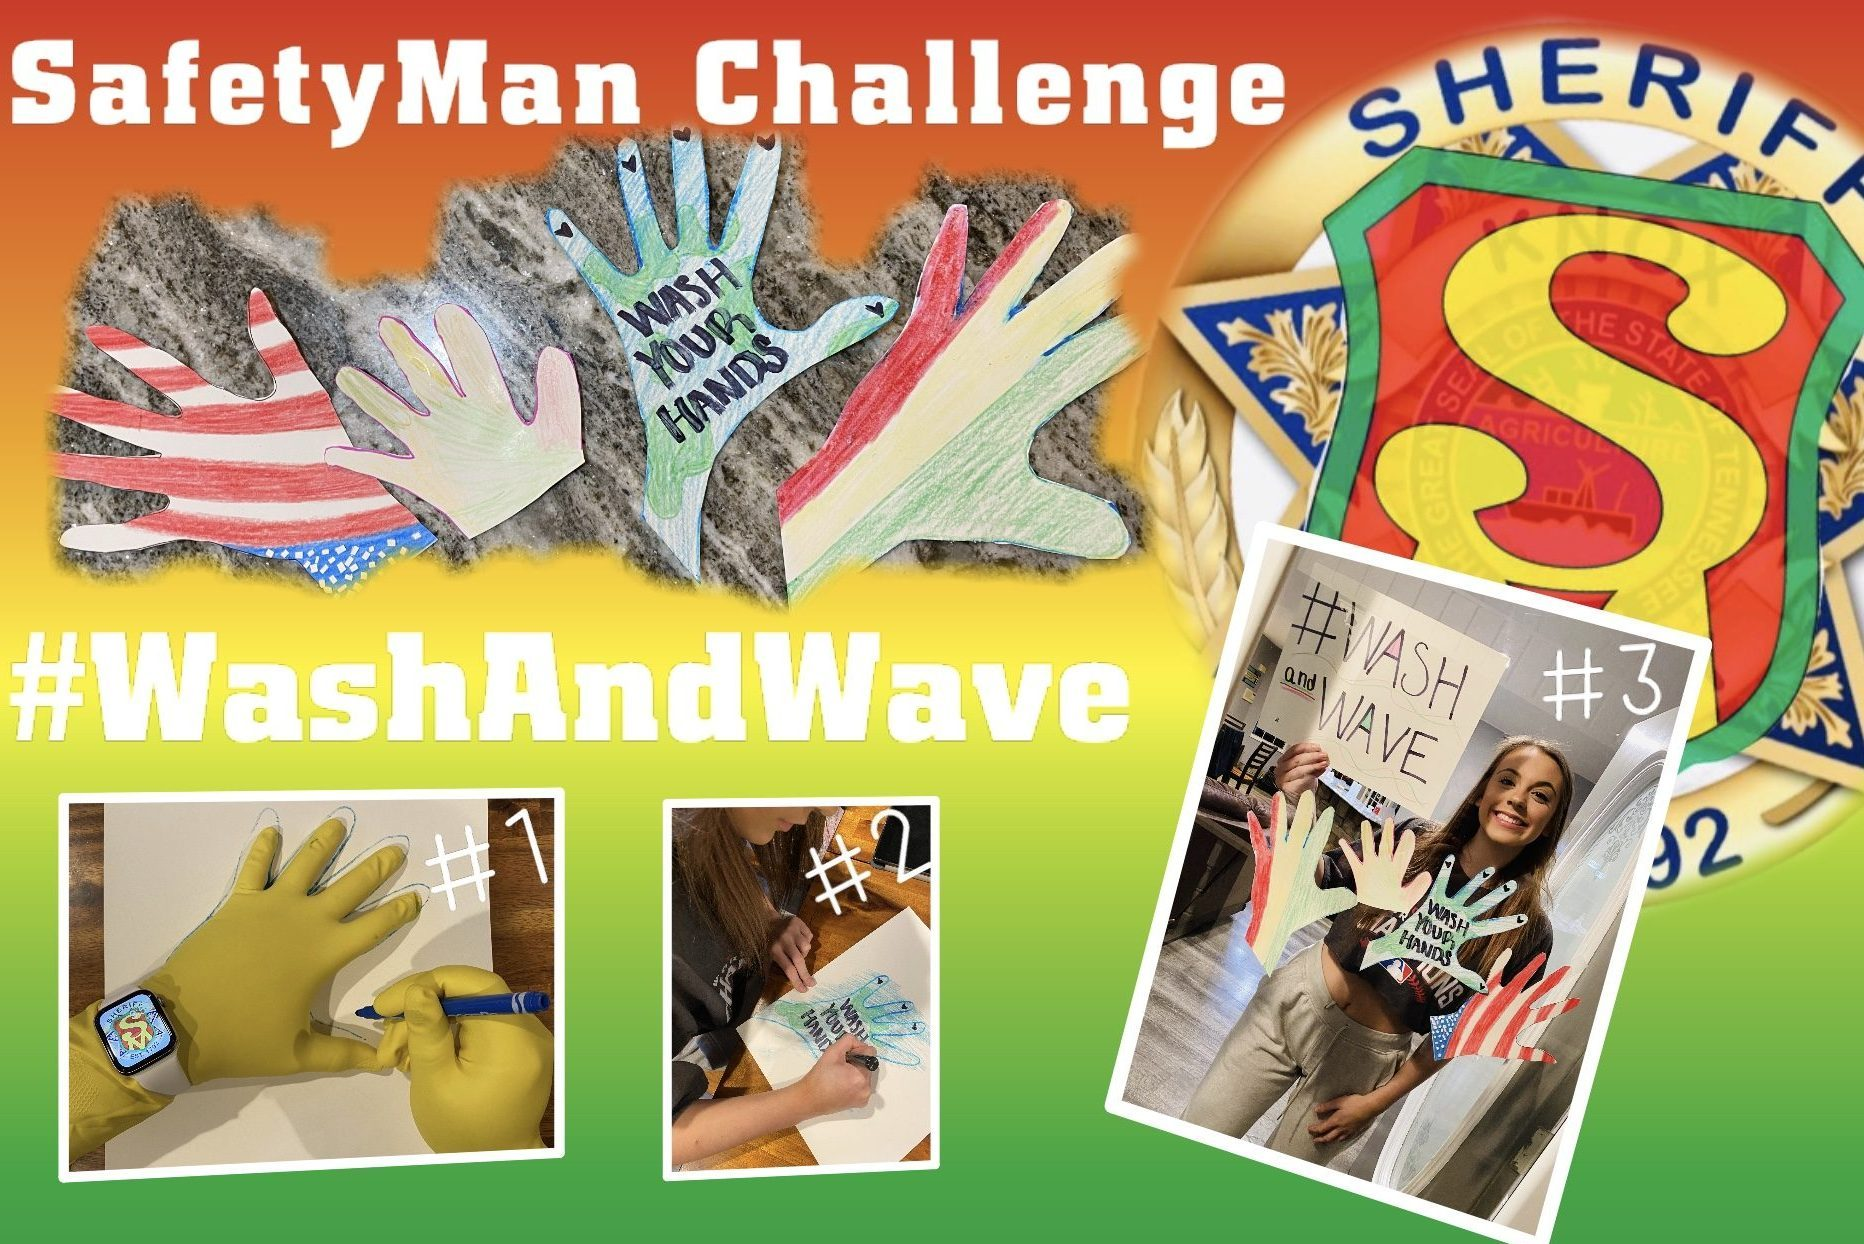 Collage of people doing wash and wave challenge with Safetyman Badge